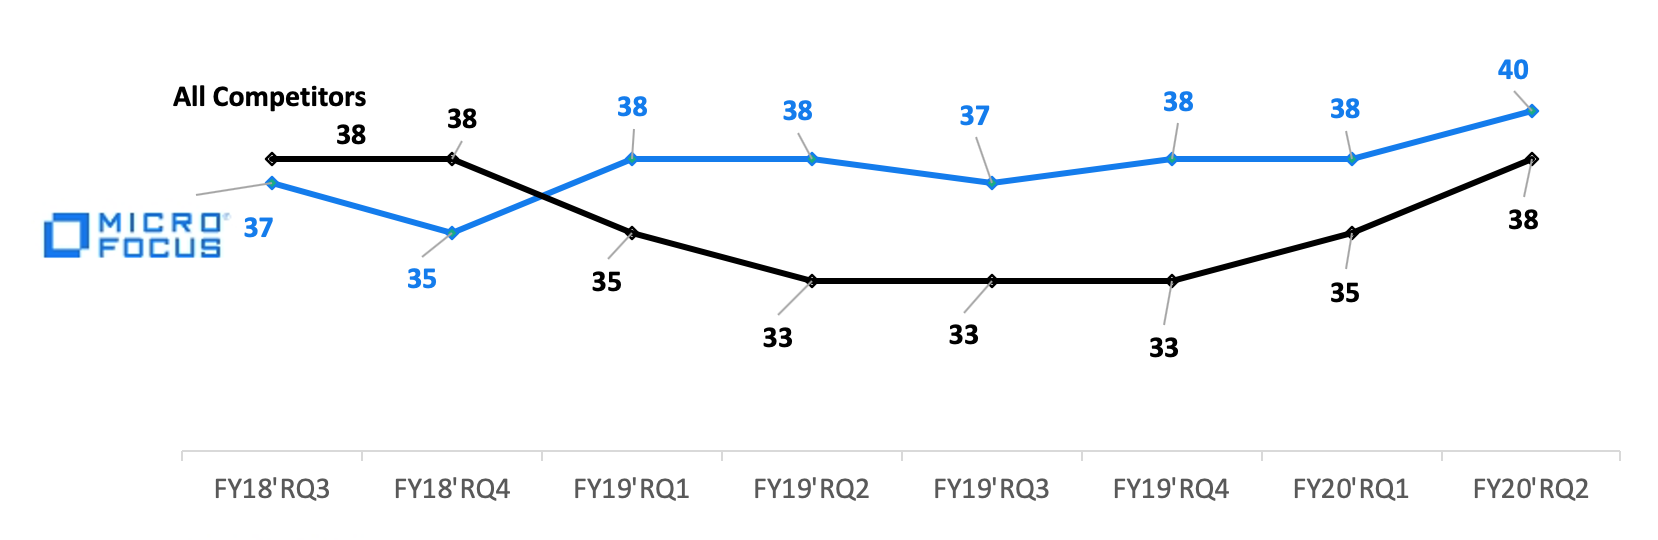 micro-focus-NPS-results